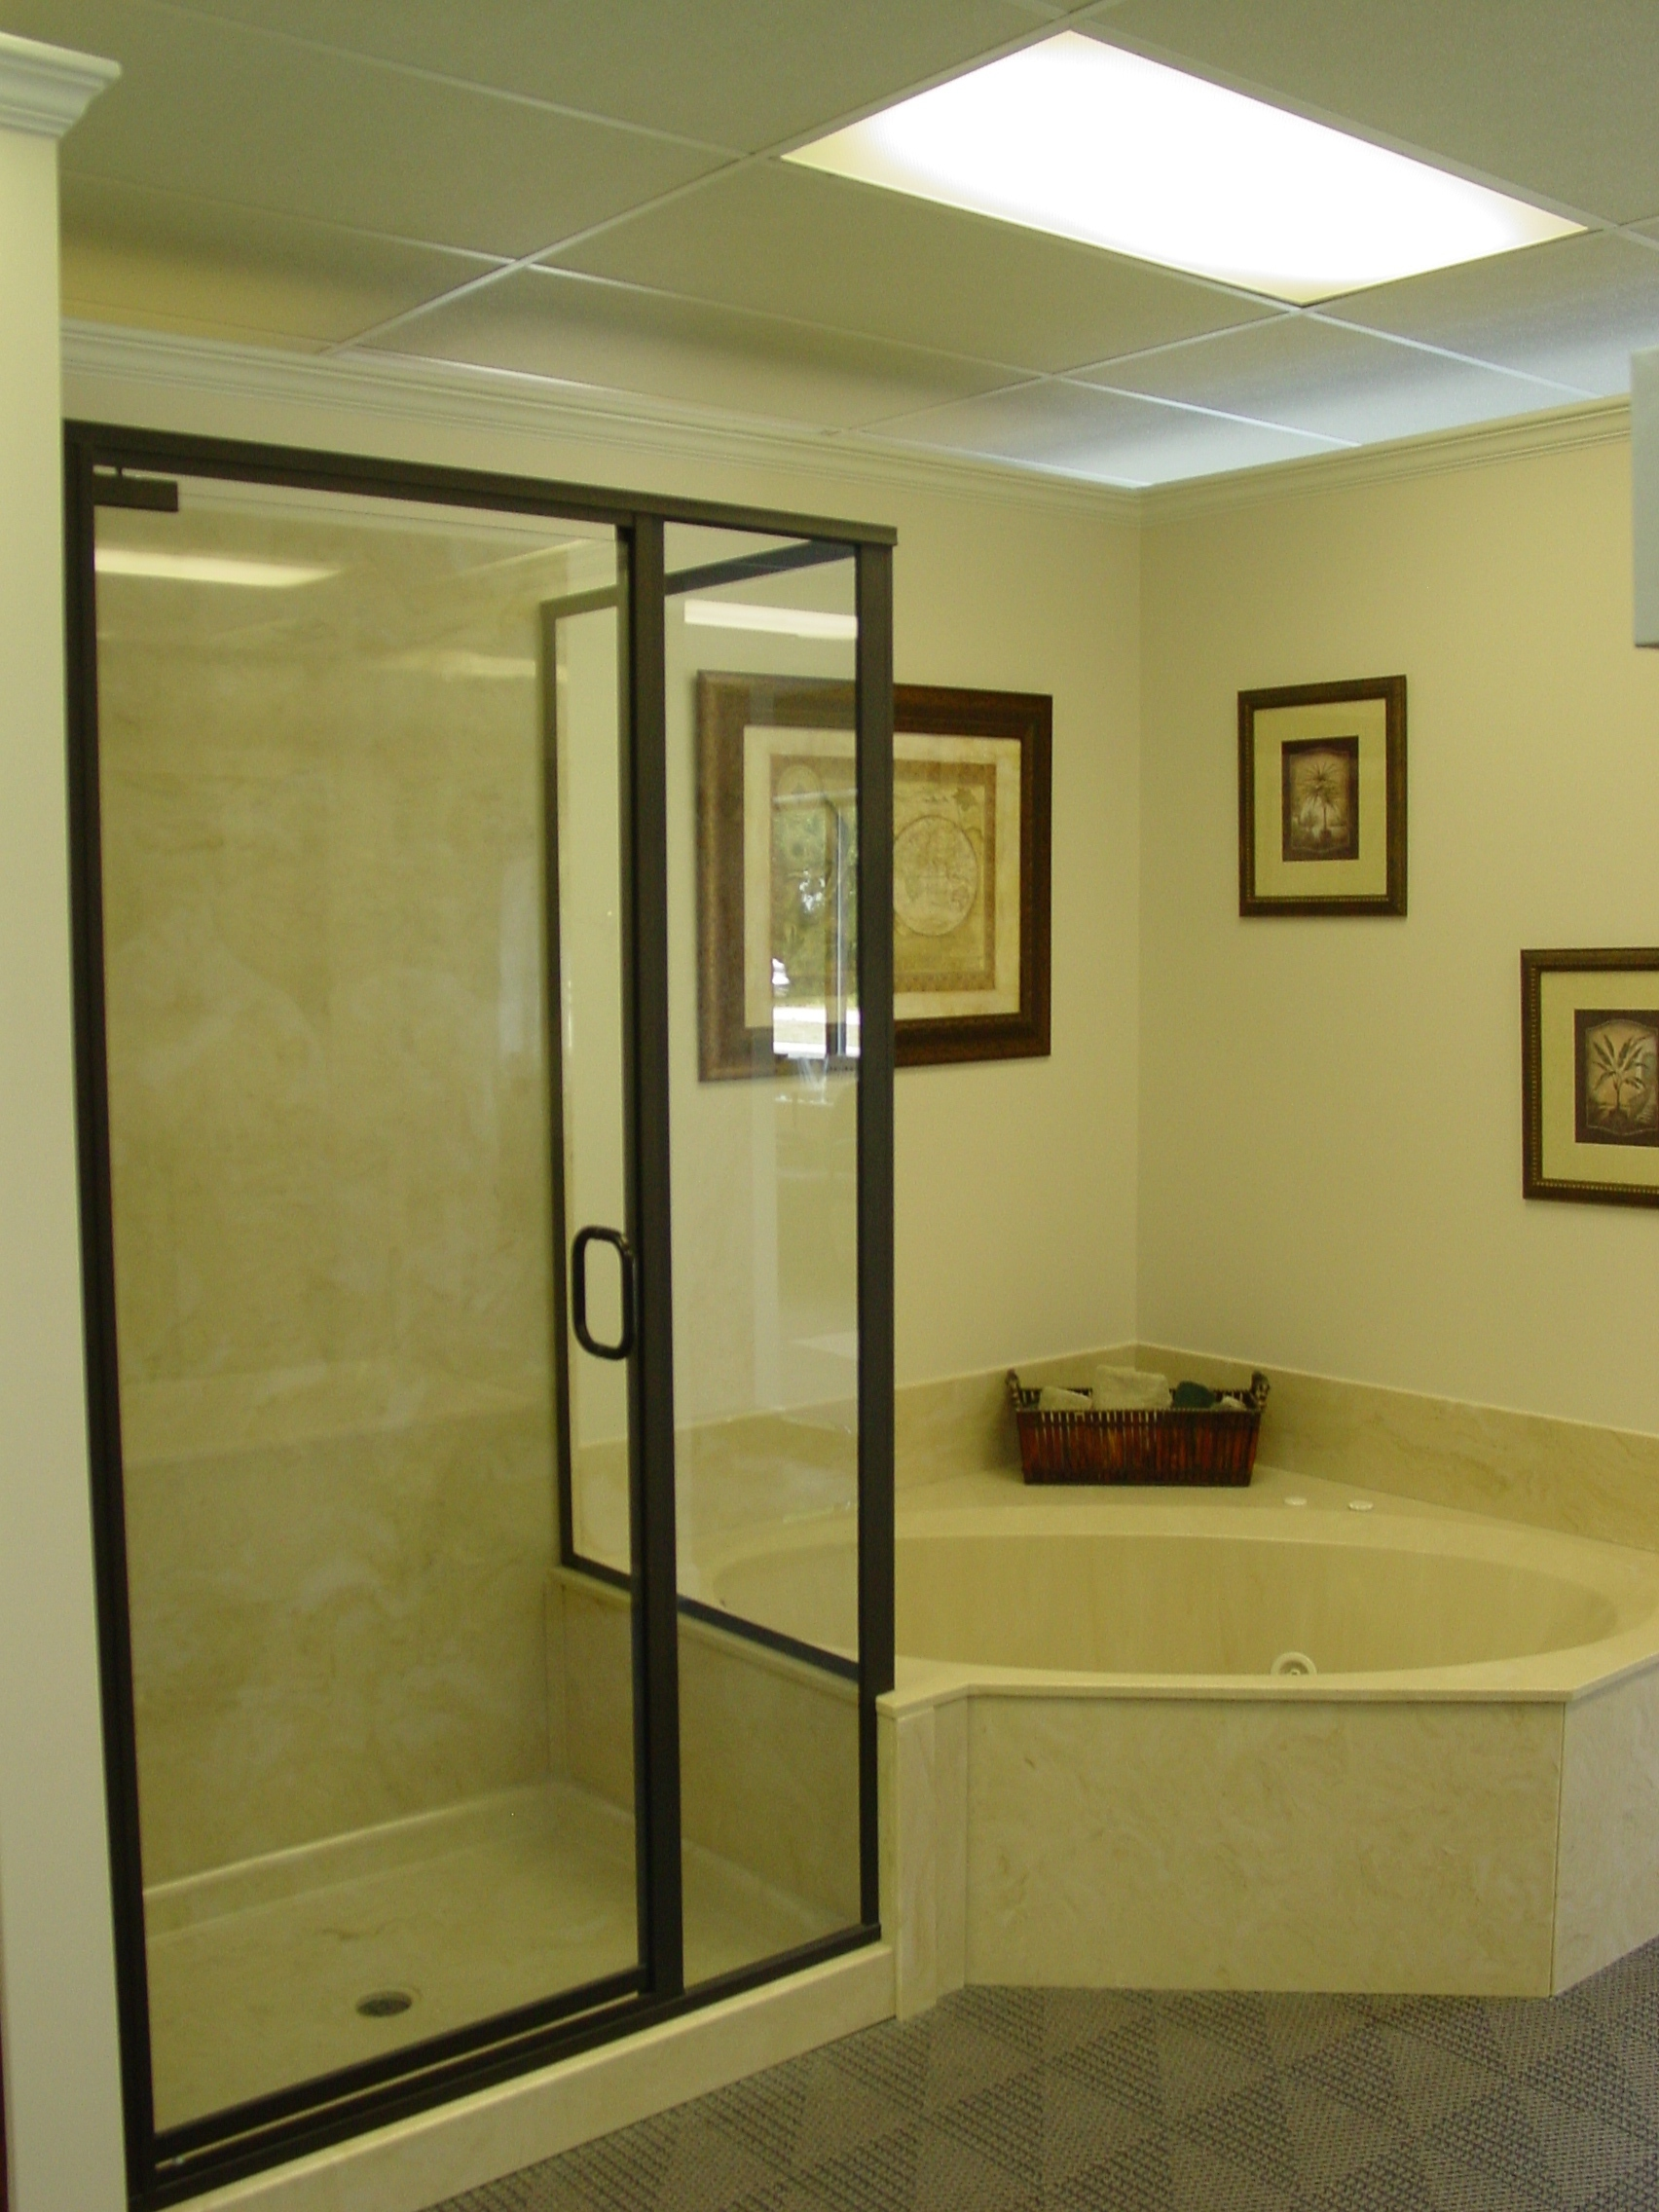 refinishing polish lowes walls made countertops bathtub shower cultured marble fabricated granite composite man sink